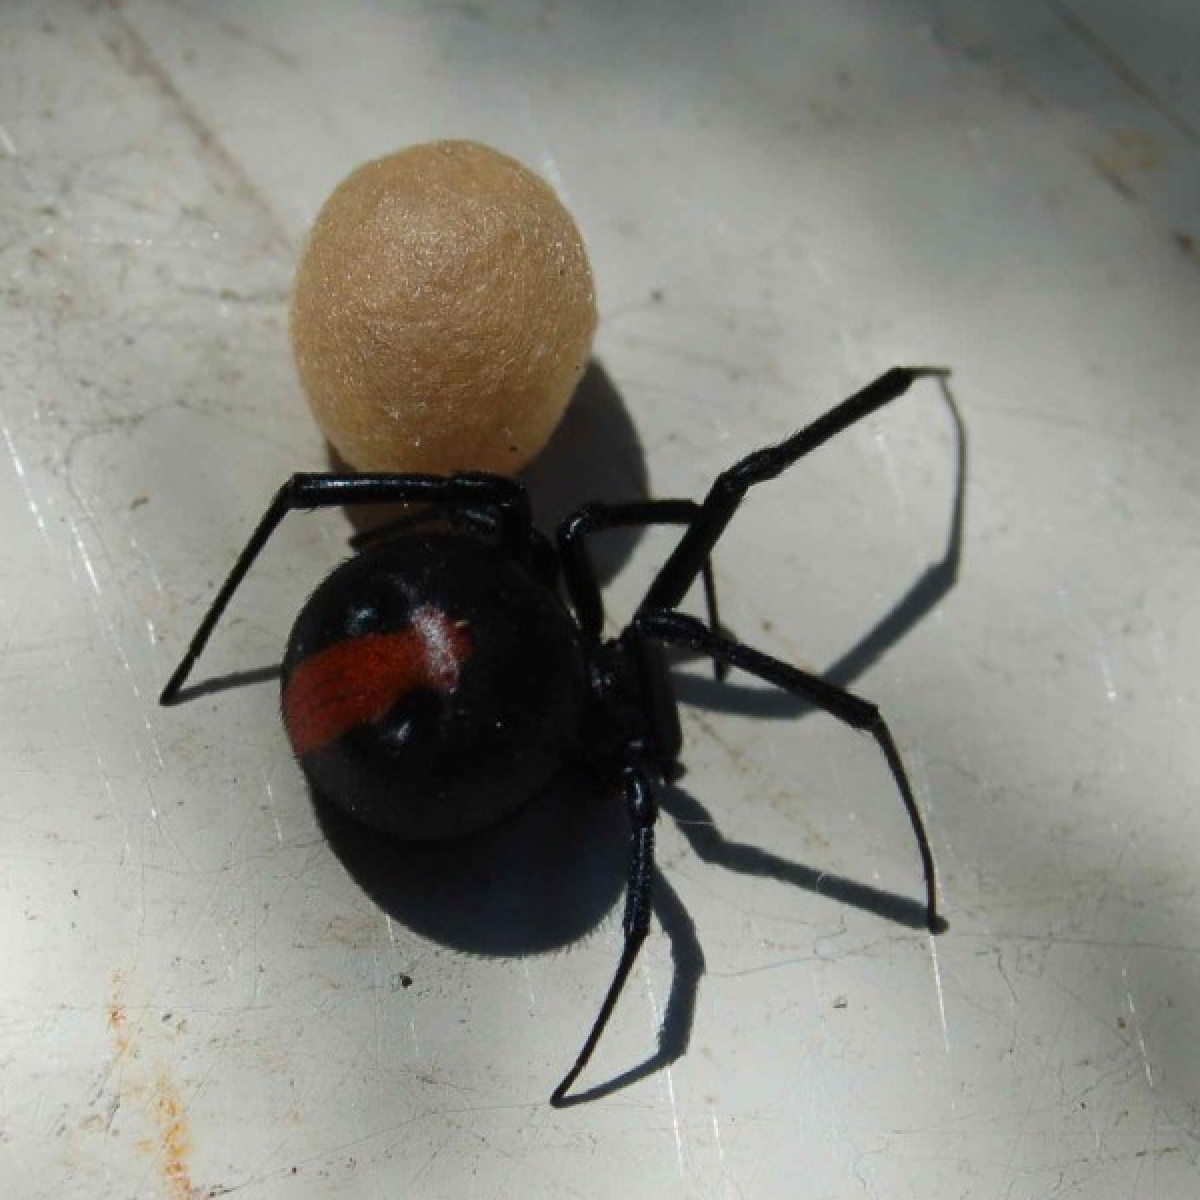 Red-backed Spider (Latrodectus hasselti)